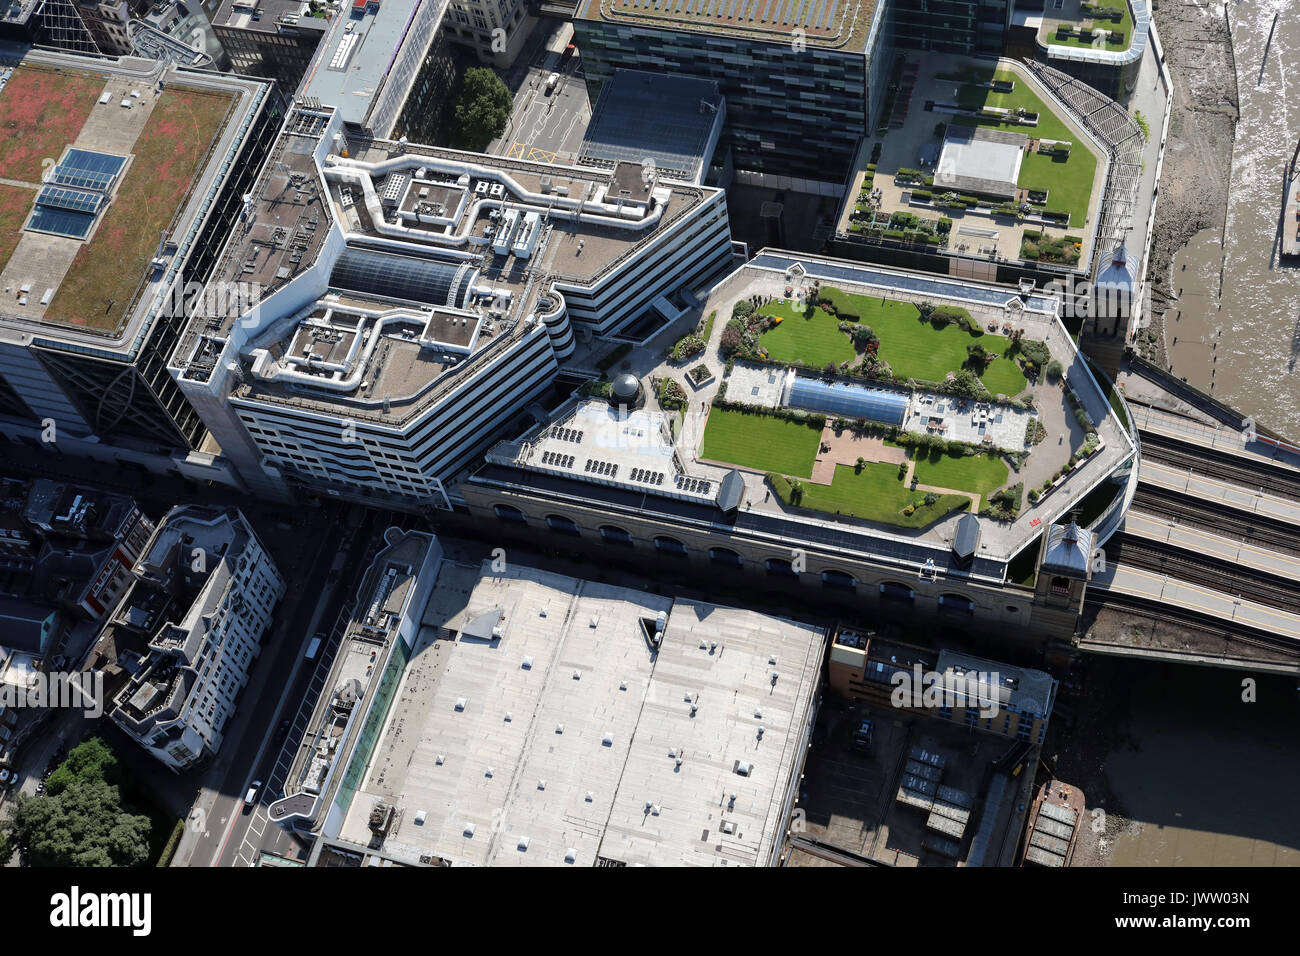 aerial view of The Banker Pub near Cannon Street Station, London - Stock Image